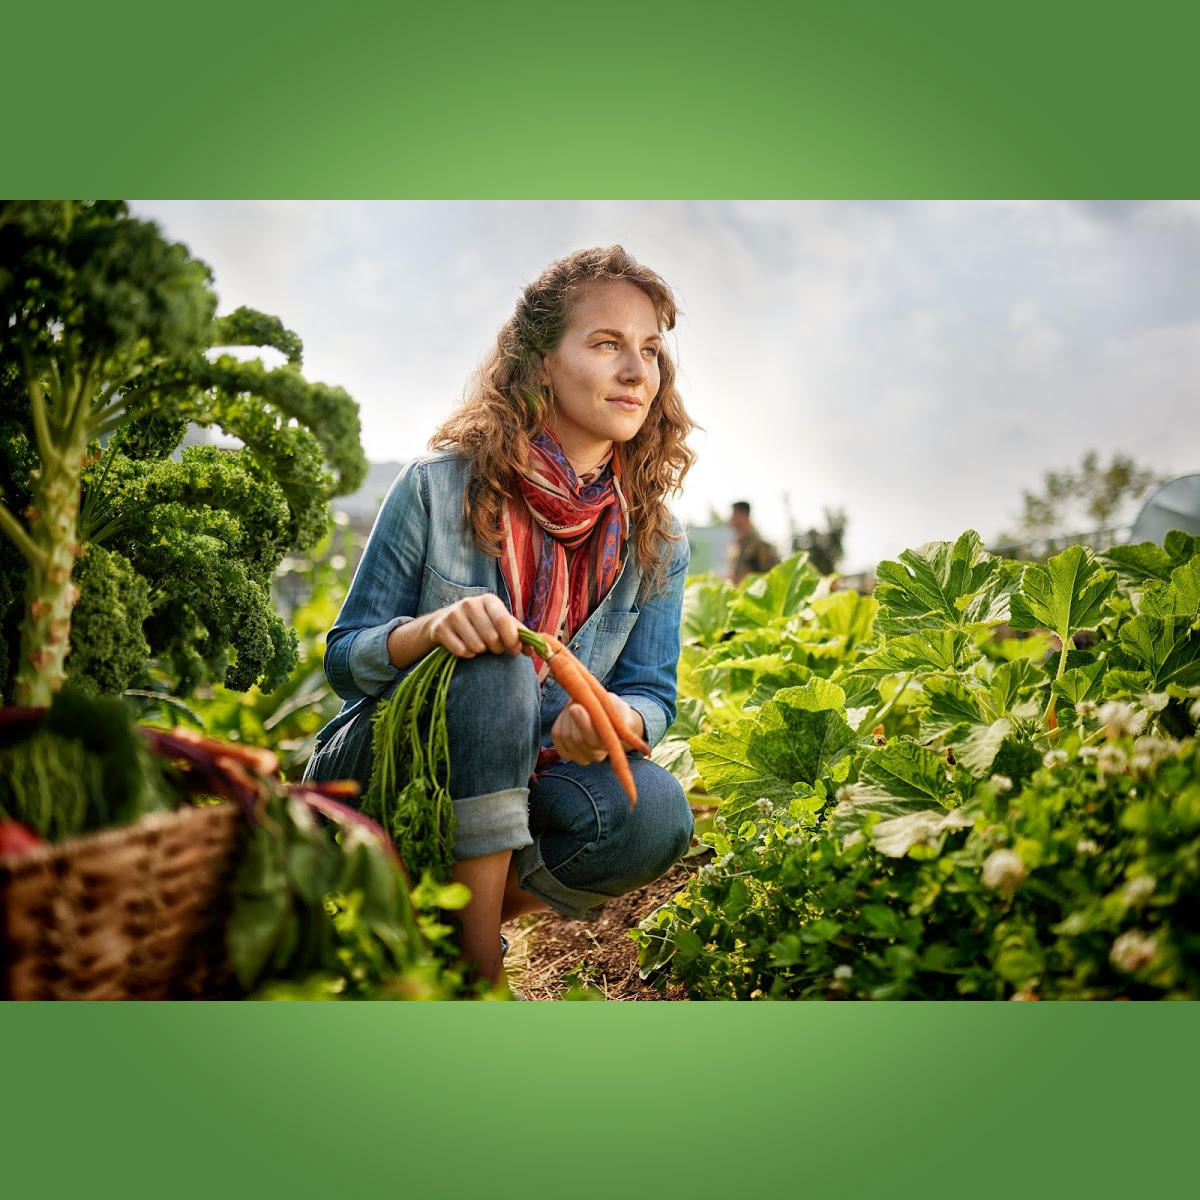 From a Male Dominated Career to Homesteading Bliss